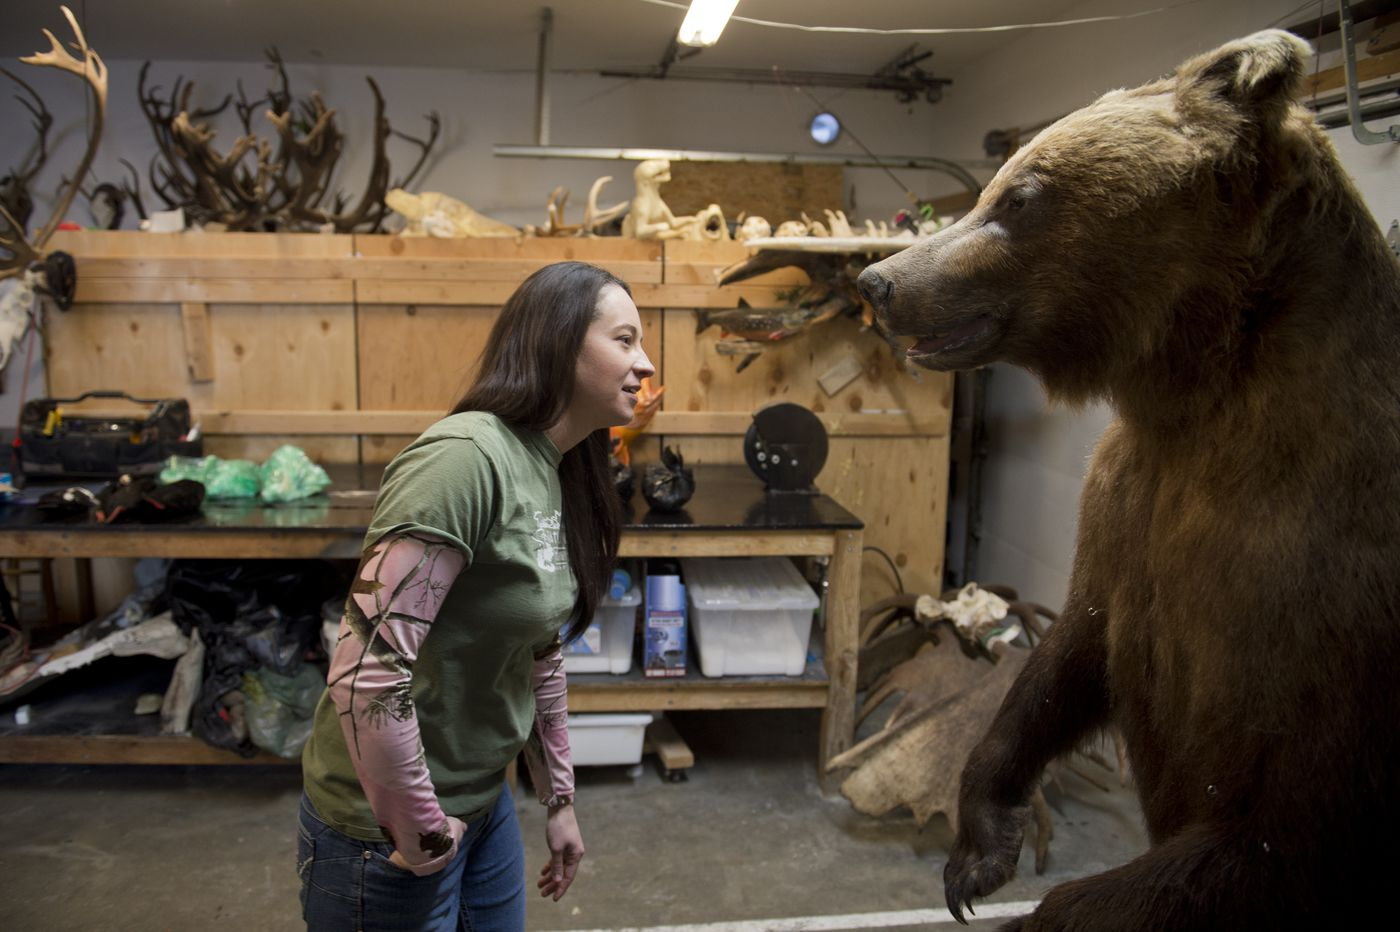 Samantha Huckstep takes a look at a Kodiak brown bear project she's working on. After the bear is tanned, she said, a project that size can take her about a month. She operates Naturally Wild Taxidermy from a shop at her Eagle River home. (Marc Lester / ADN)